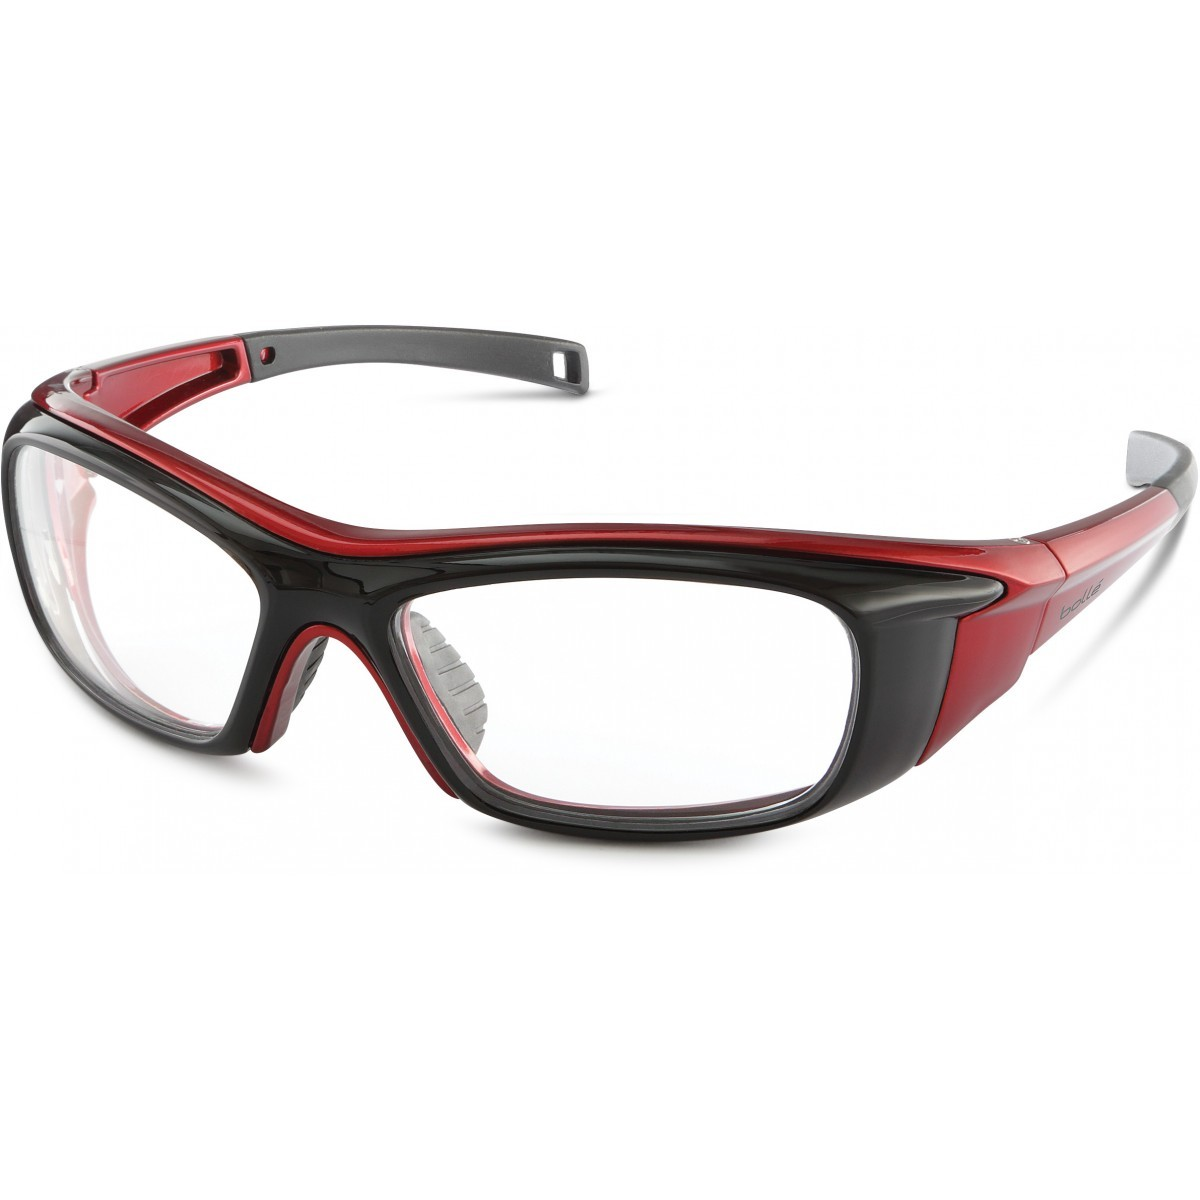 Bolle Drift | ANSI Rated Industrial Safety Eyeglasses, ANSI Rated ...